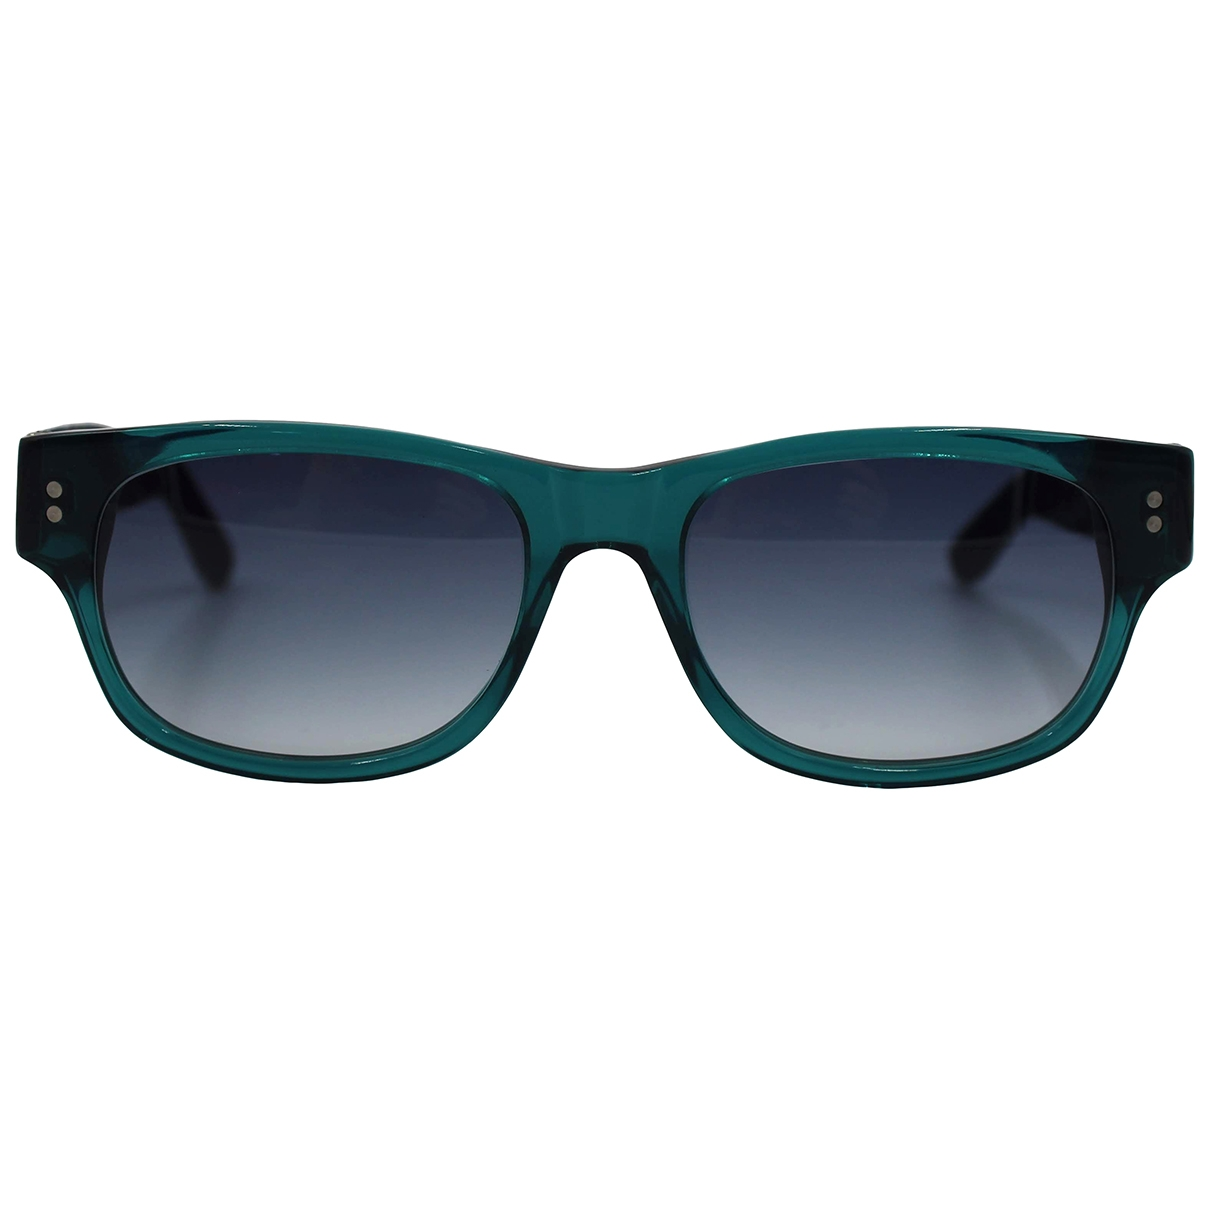 Romeo Gigli - Lunettes   pour homme - vert